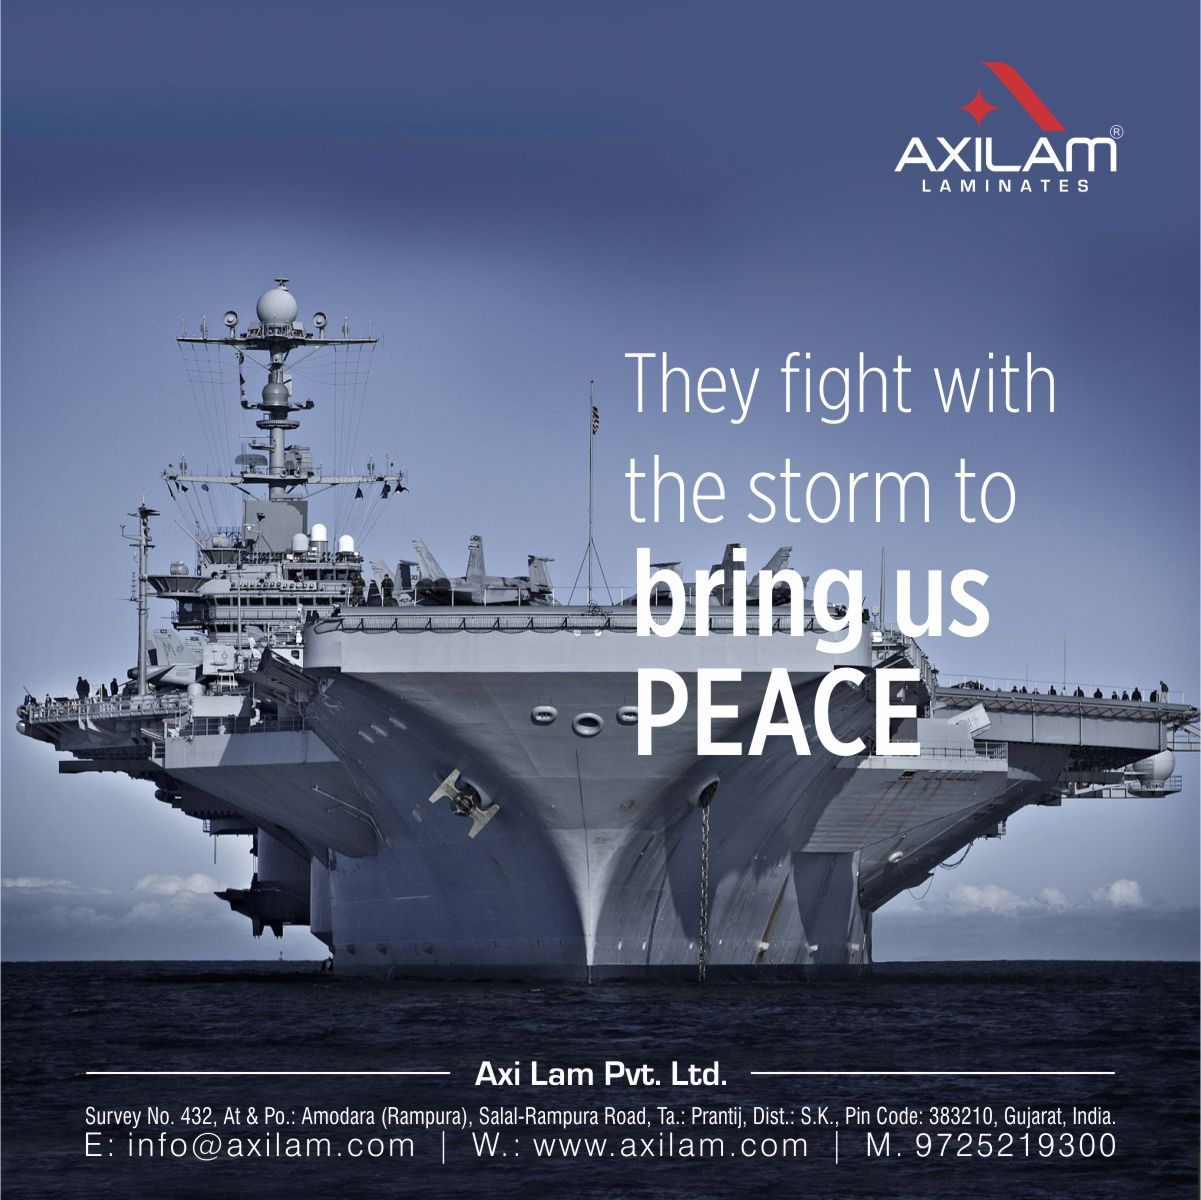 They Fight With The Storm Bring Is Peace Indian Navy Day Axilam Laminates Luxurydesign Indian Navy Day Indian Navy Day Navy Day National Days